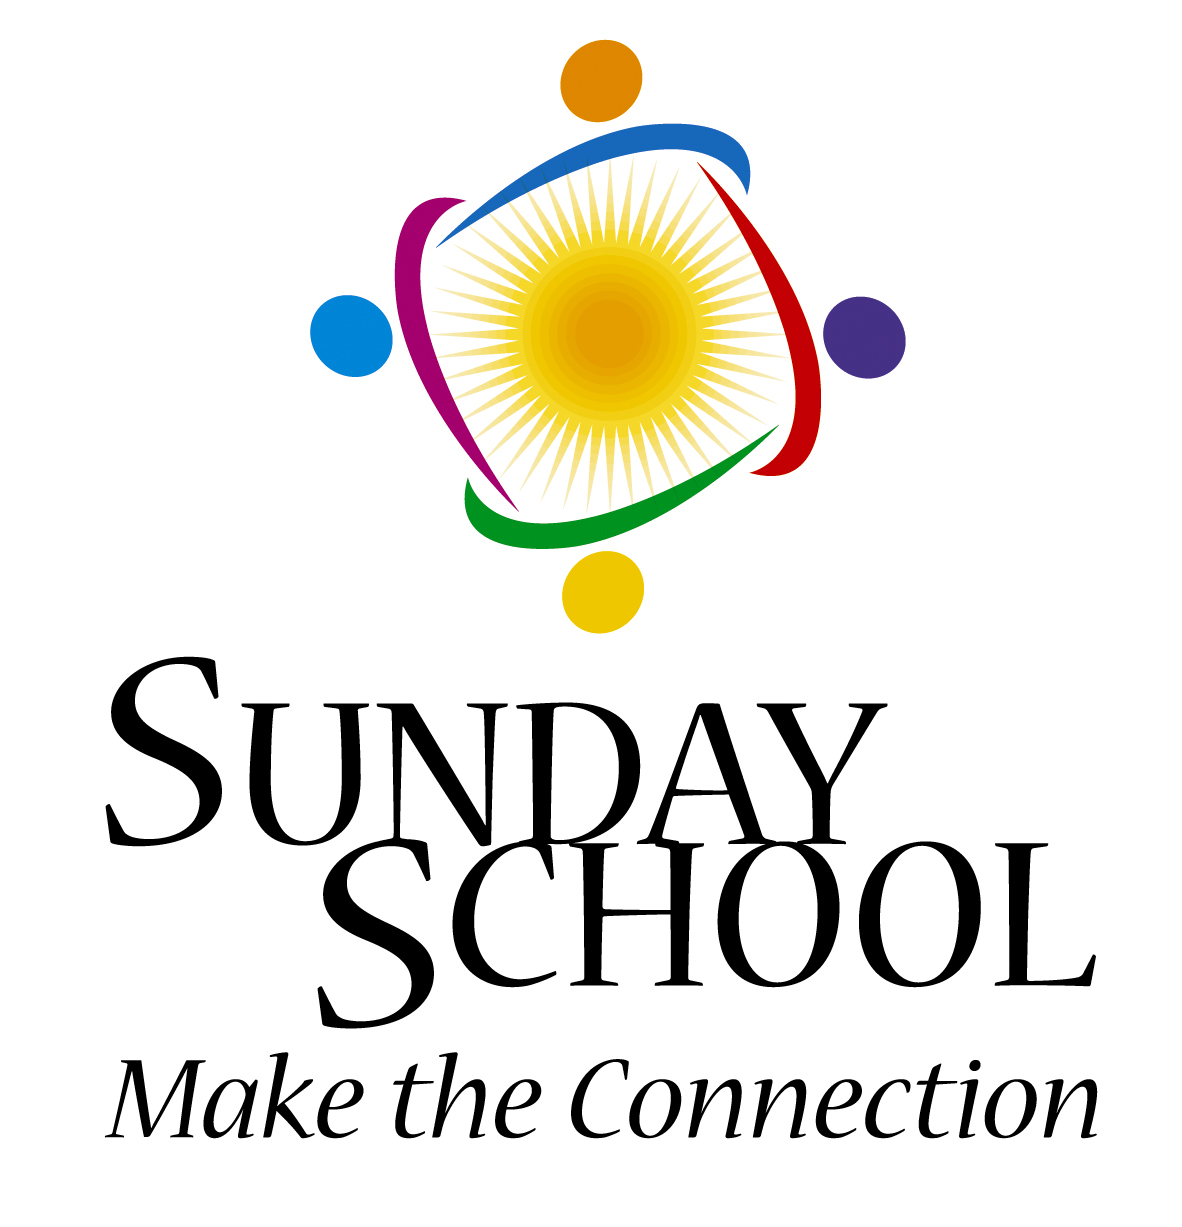 1182x1227 Sunday School Clip Art Free Clipart Images 8 Image